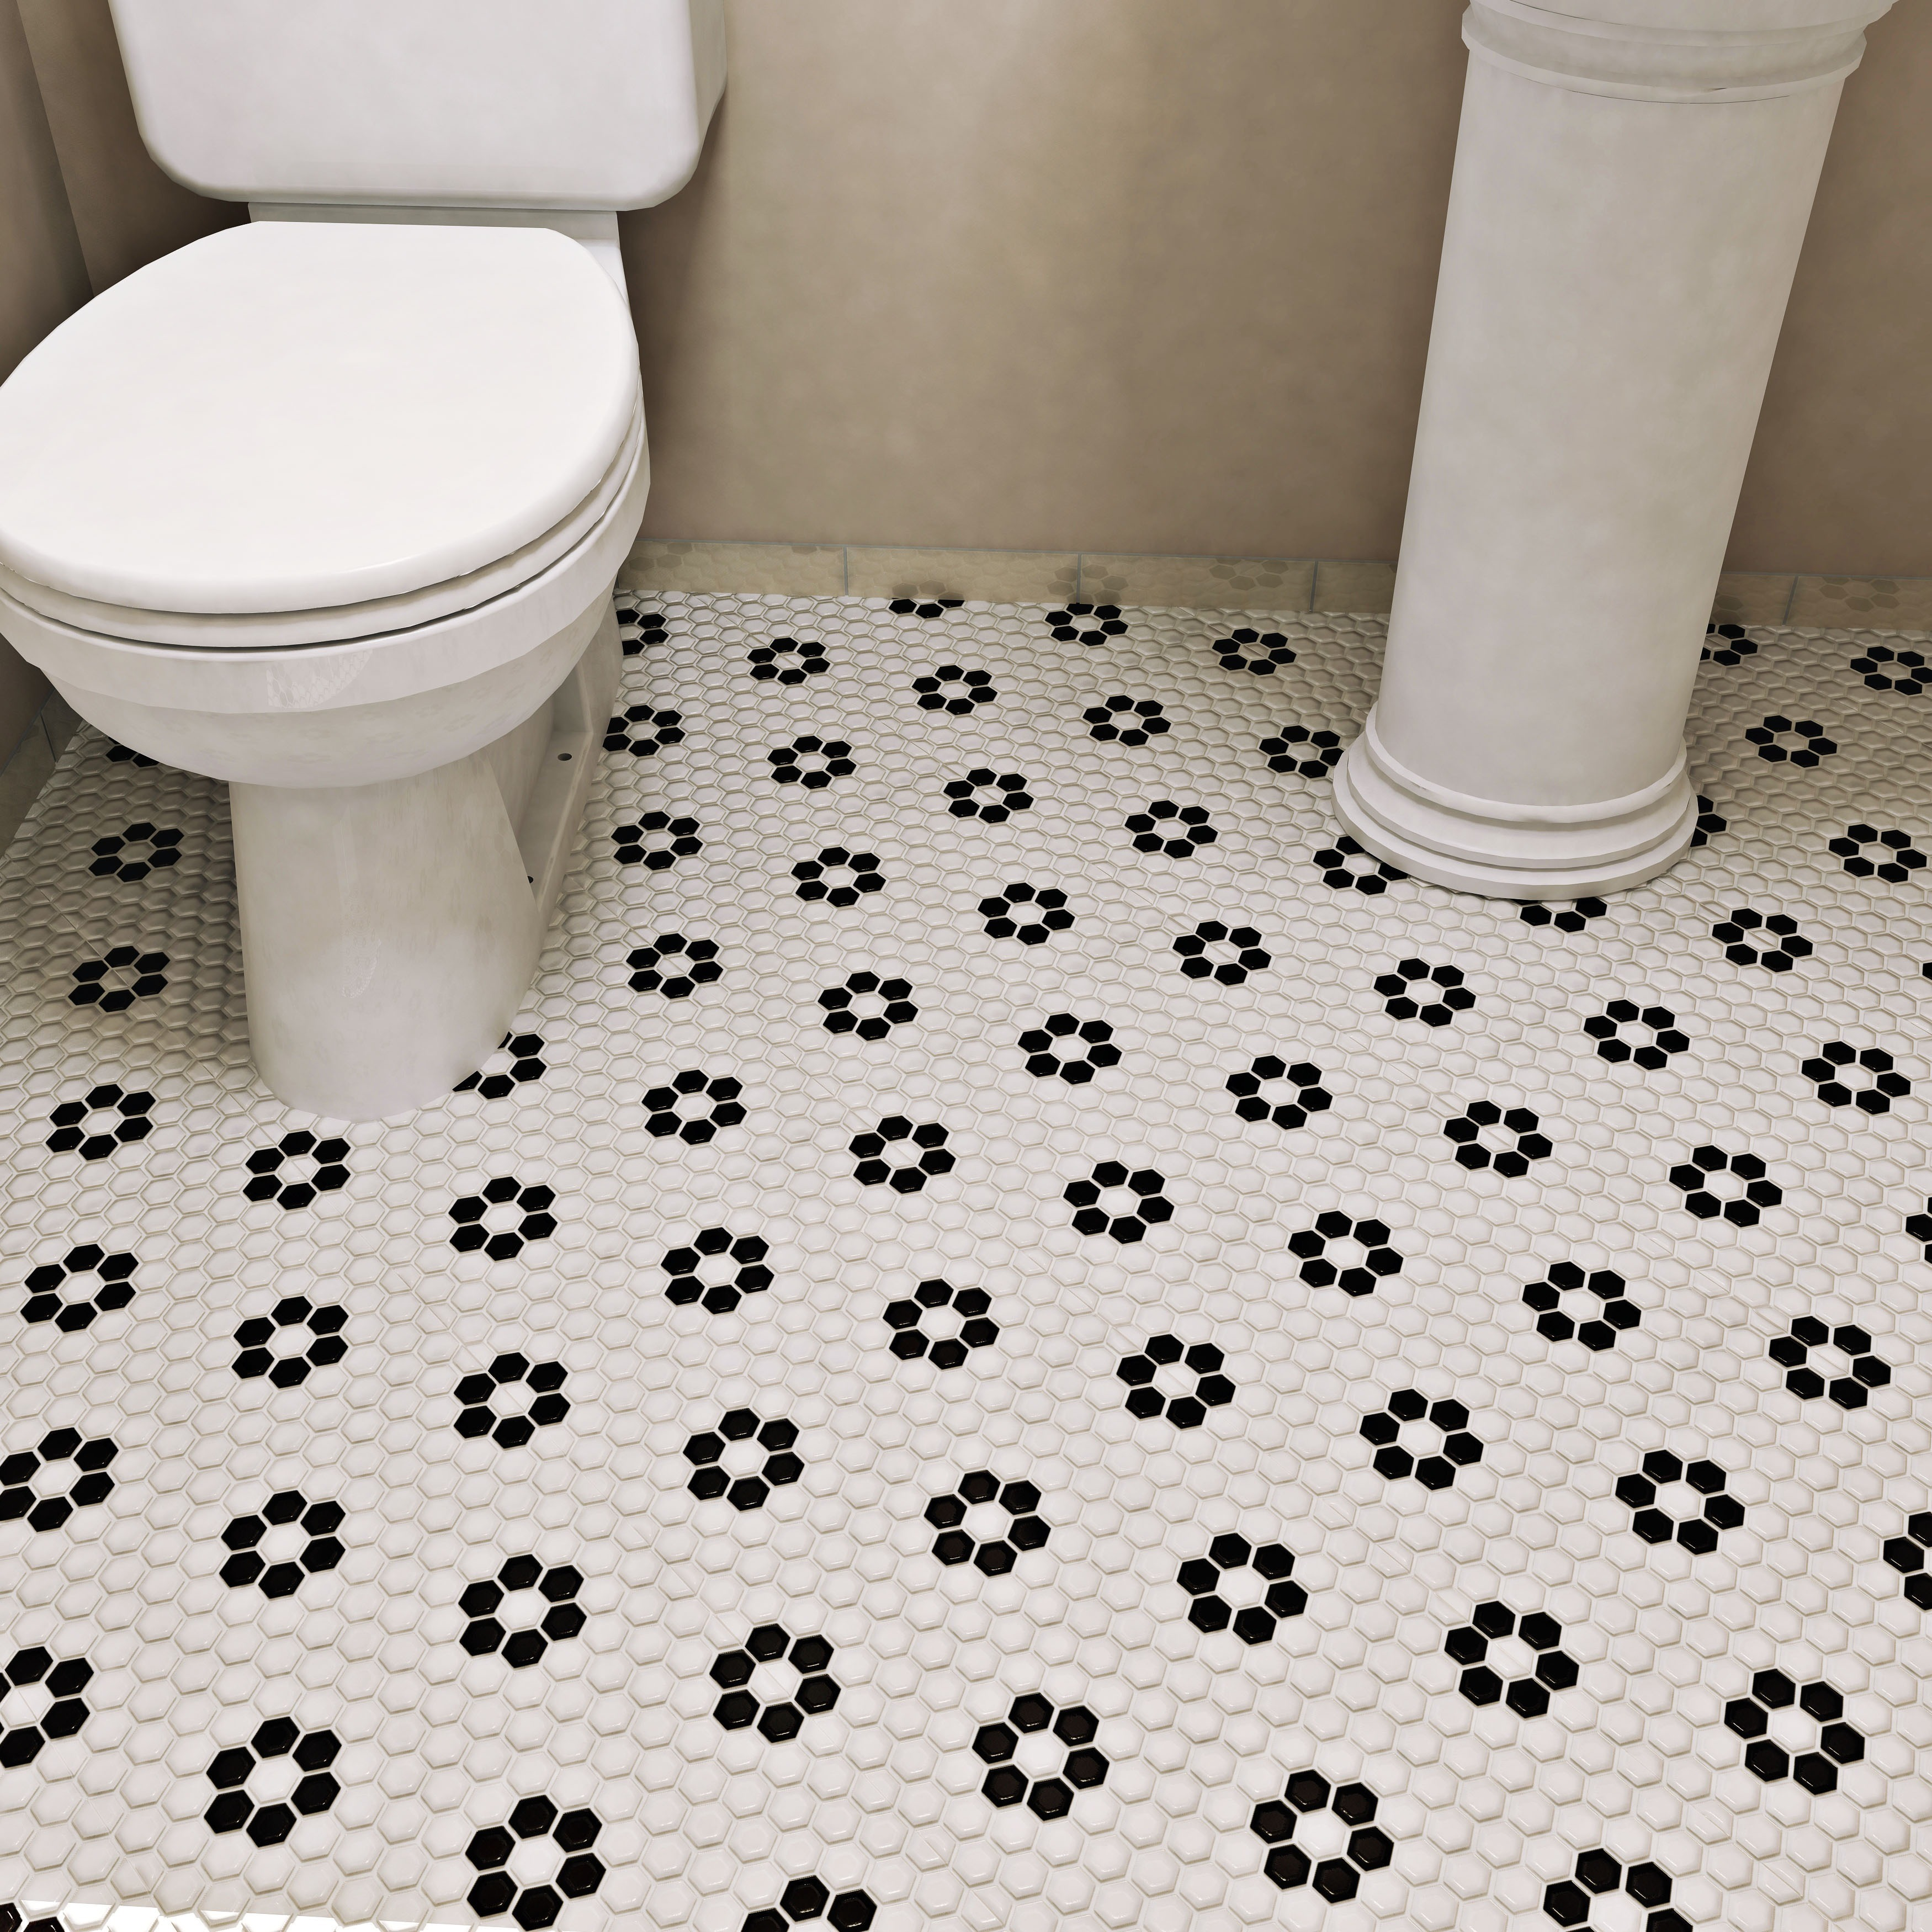 SomerTile 10.25x11.75-inch Victorian Hex White with Flower Porcelain ...